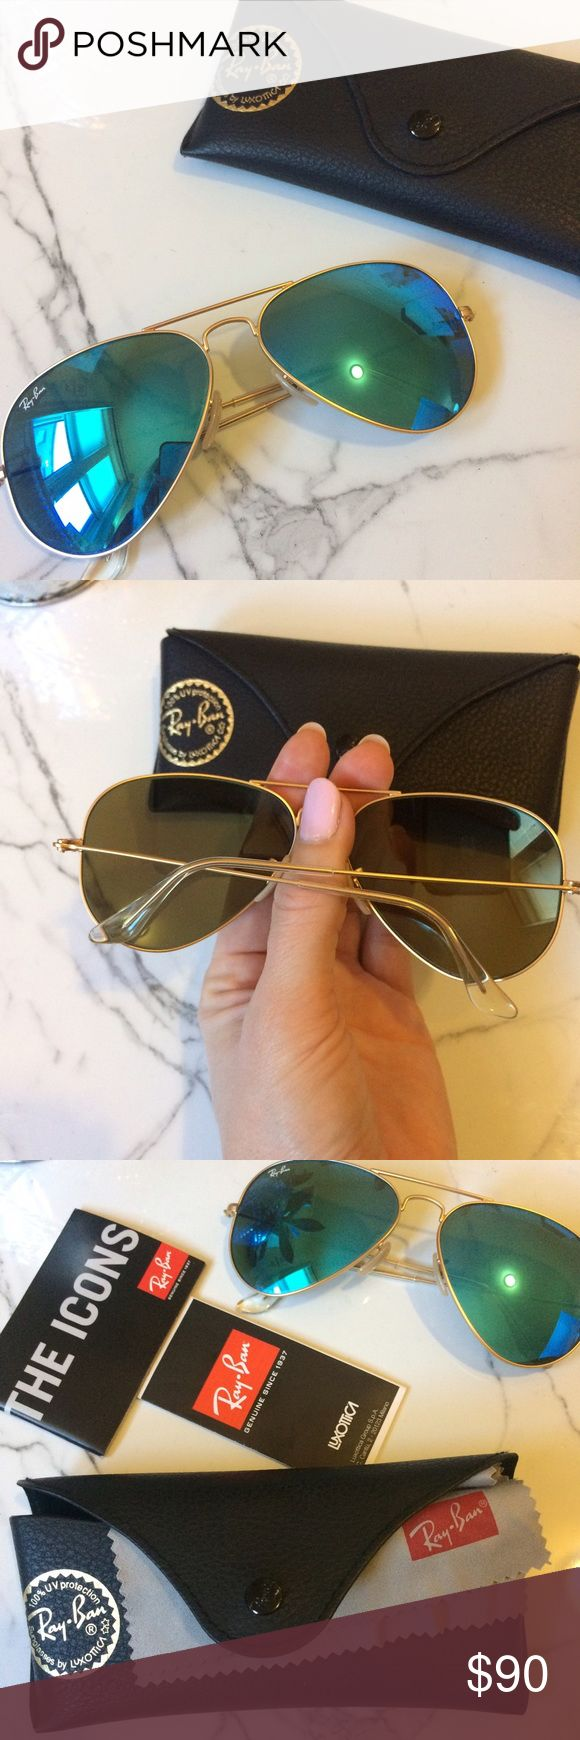 Ray Ban Large Icon Aviators Gold/Aqua Blue Excellent, like-new. Only worn a handful of times. Ray-Ban Accessories Sunglasses